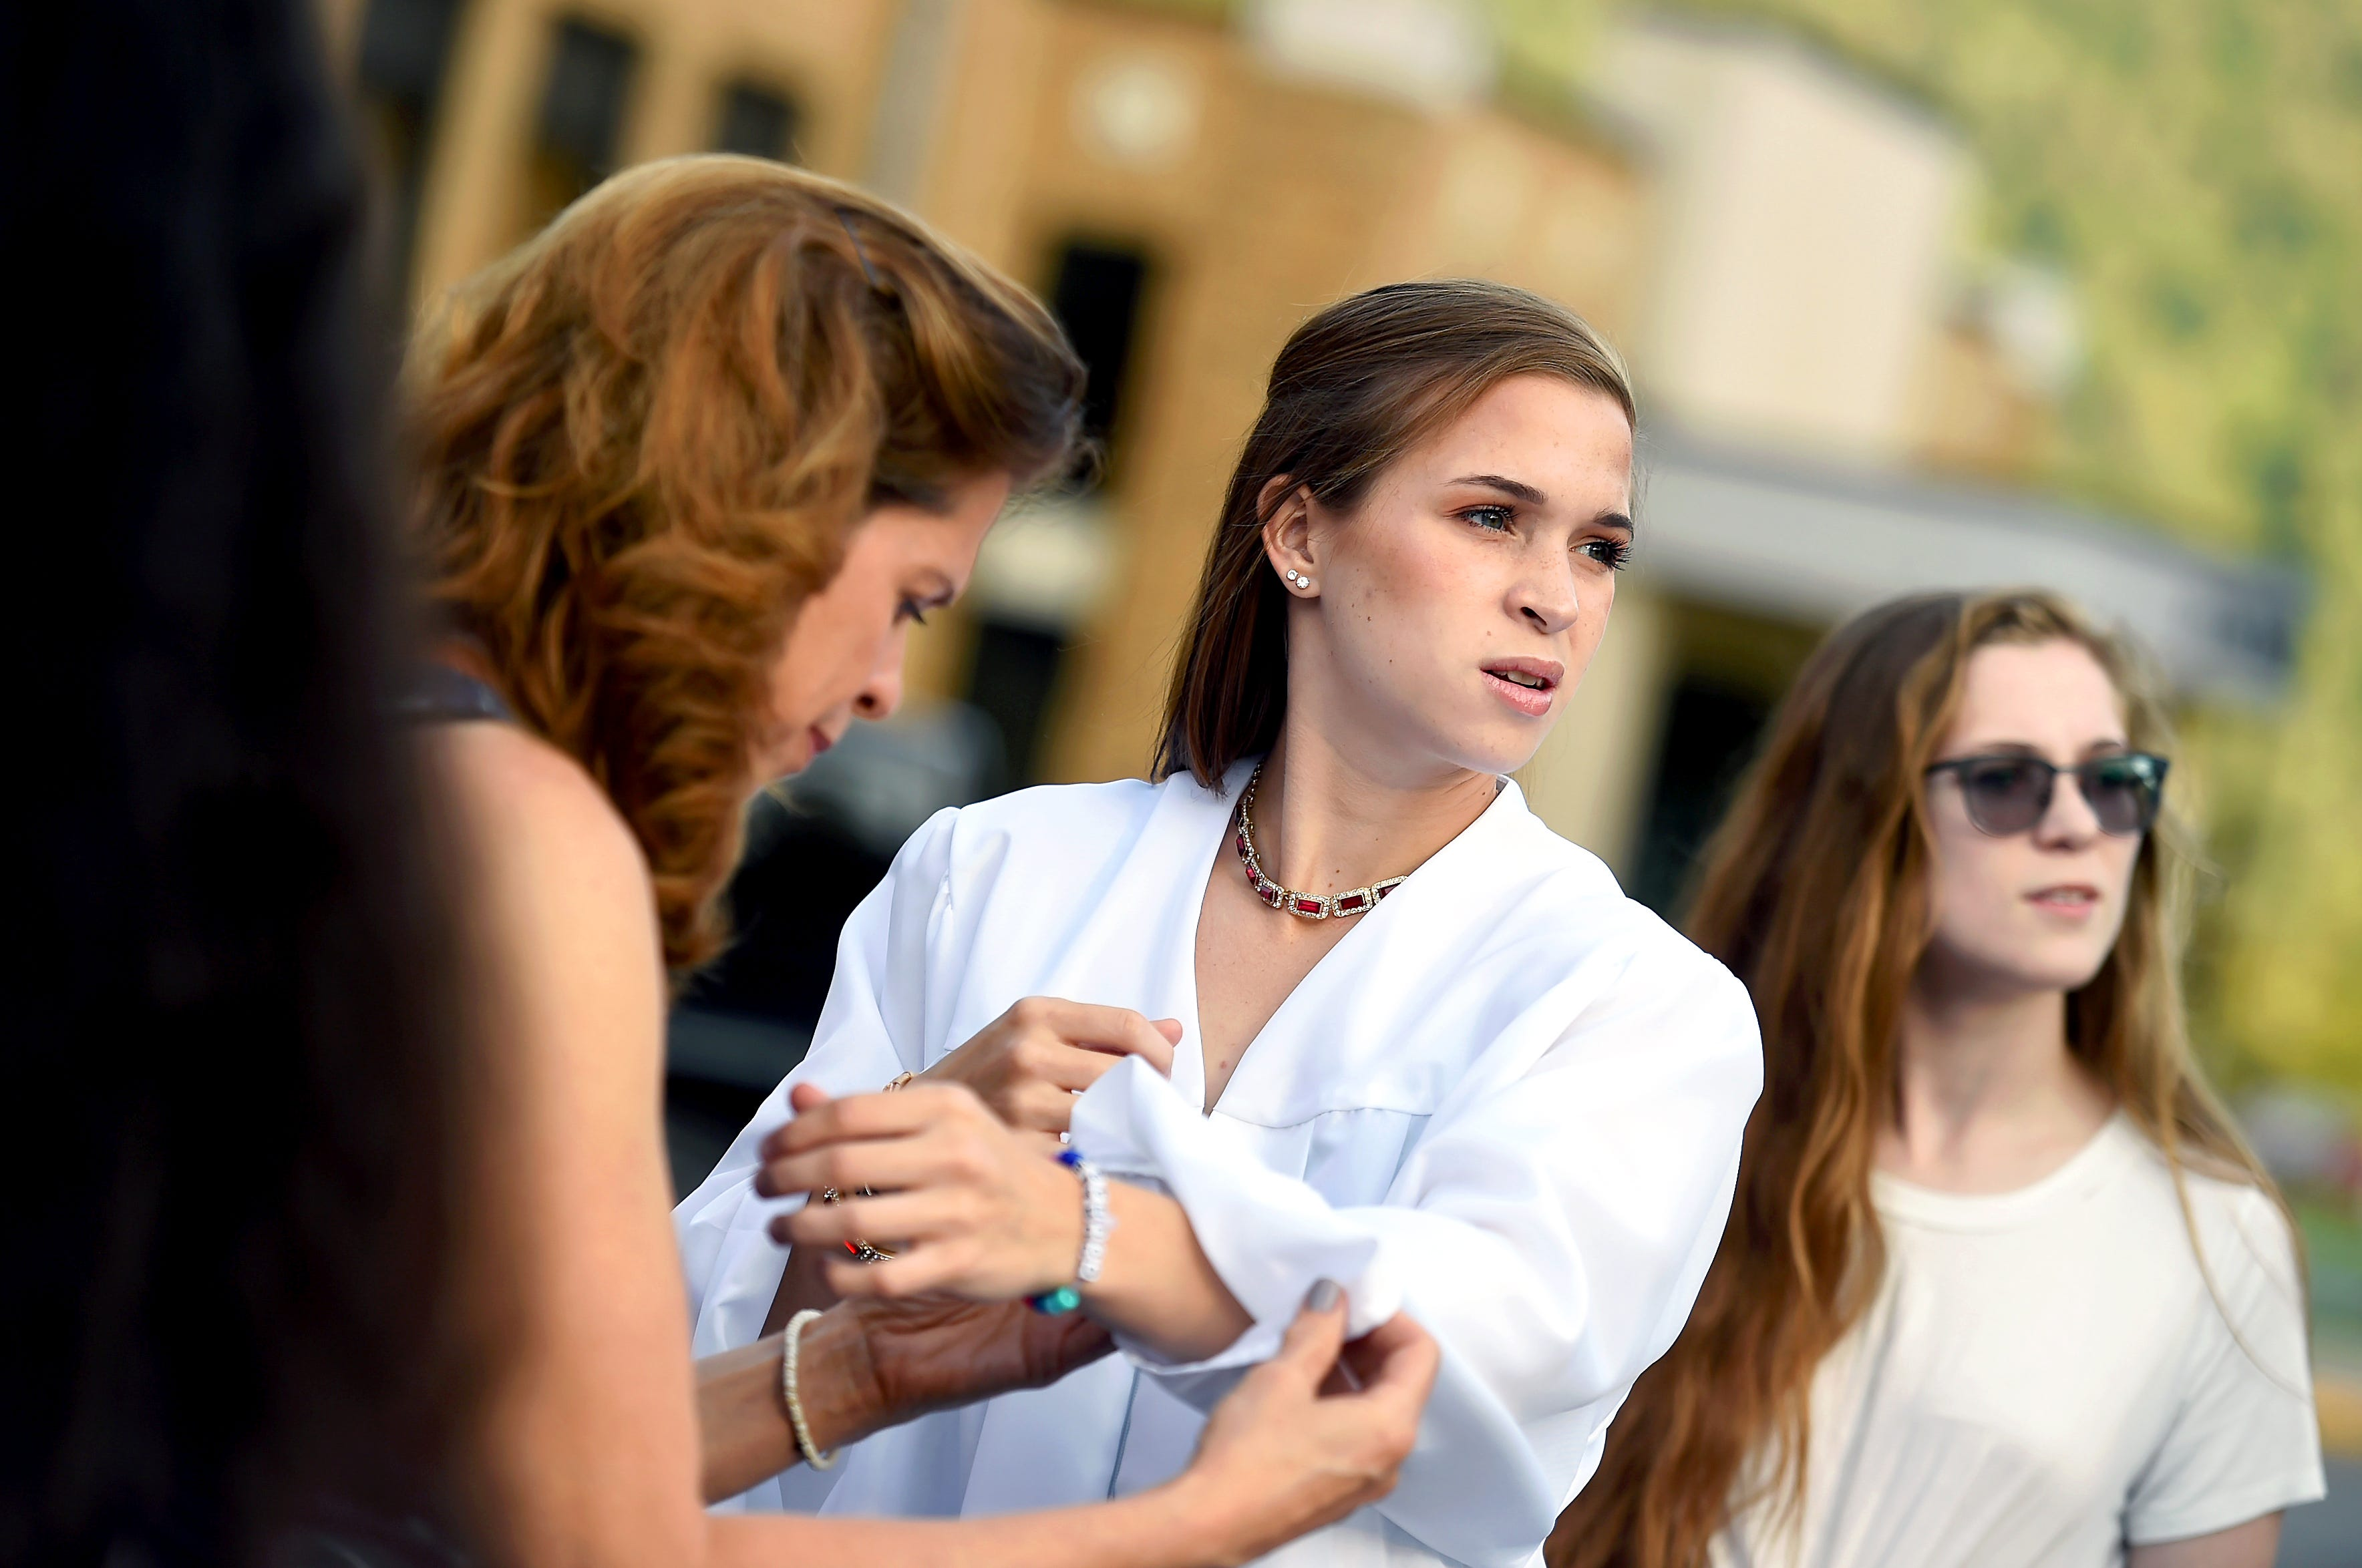 Emily Brown's mother, Sandy, helps her ready for graduation as her older sister Bethany, looks on before Emily's graduation from Downsville High School on Friday, June 28, 2019. As toddlers, both Emily and Bethany were diagnosed with cystic fibrosis.